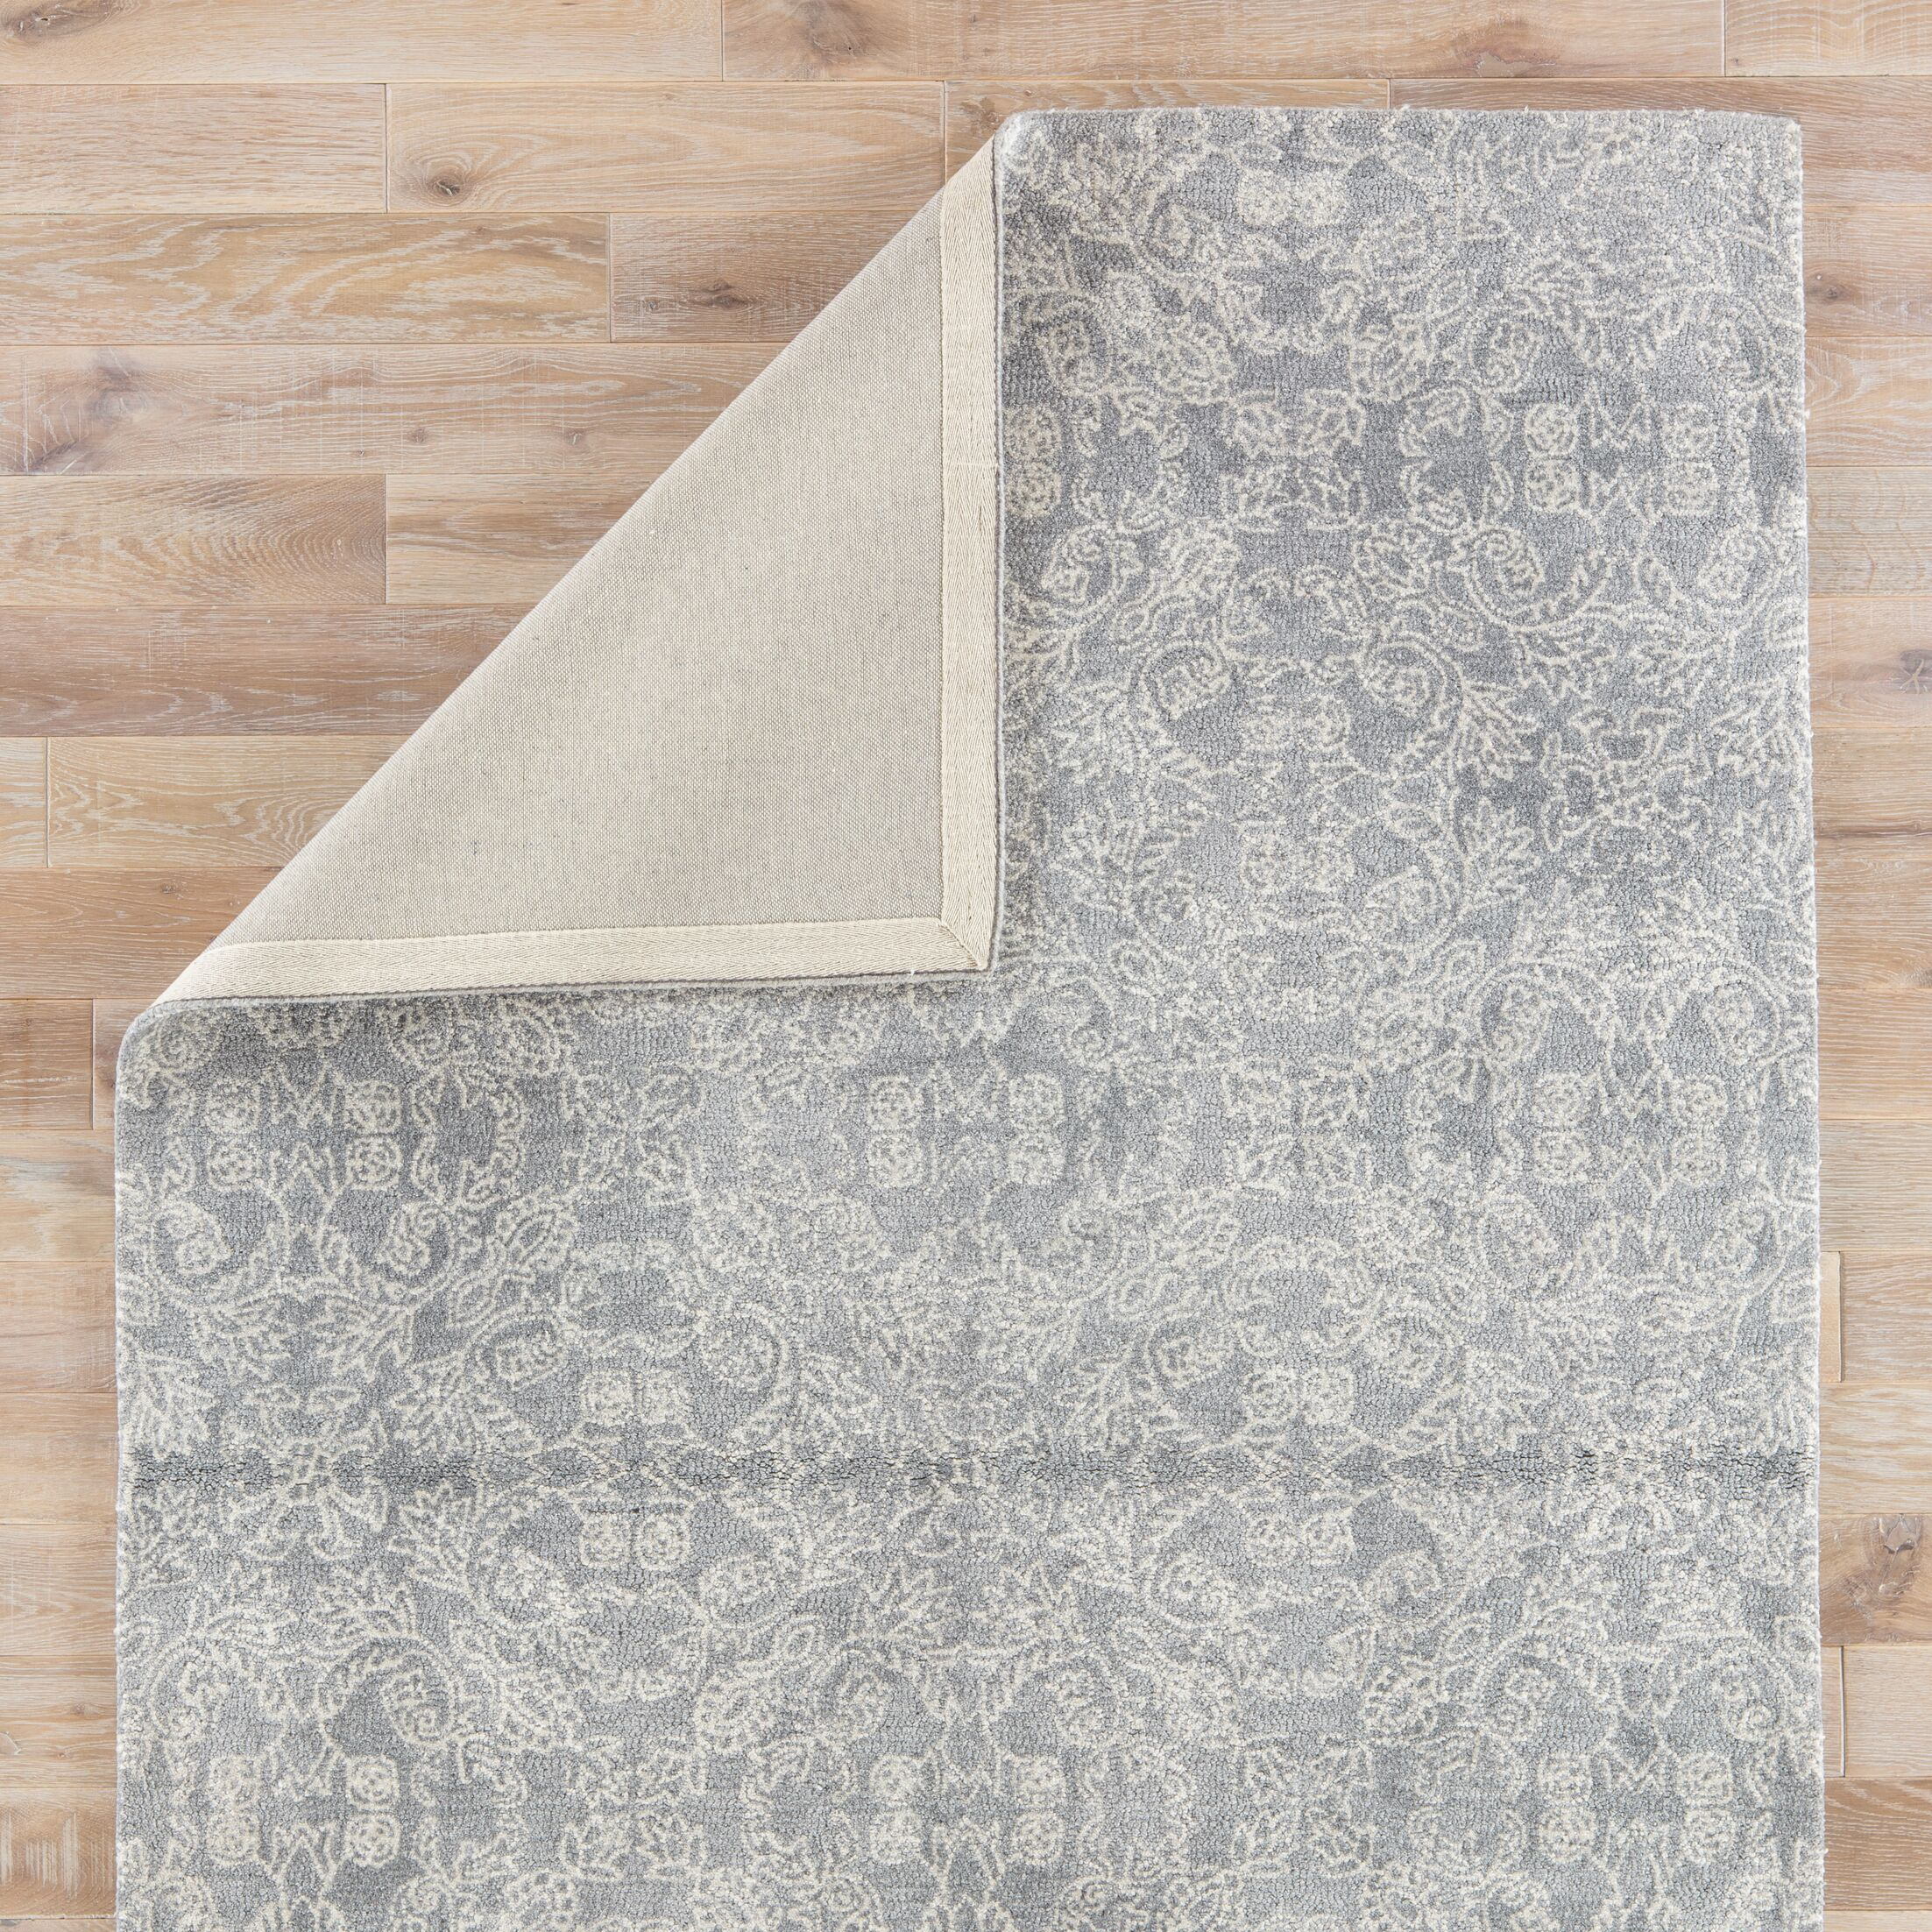 Dylan Hand-Tufted Wild Dove/Turtledove Area Rug Rug Size: Rectangle 5' x 8'